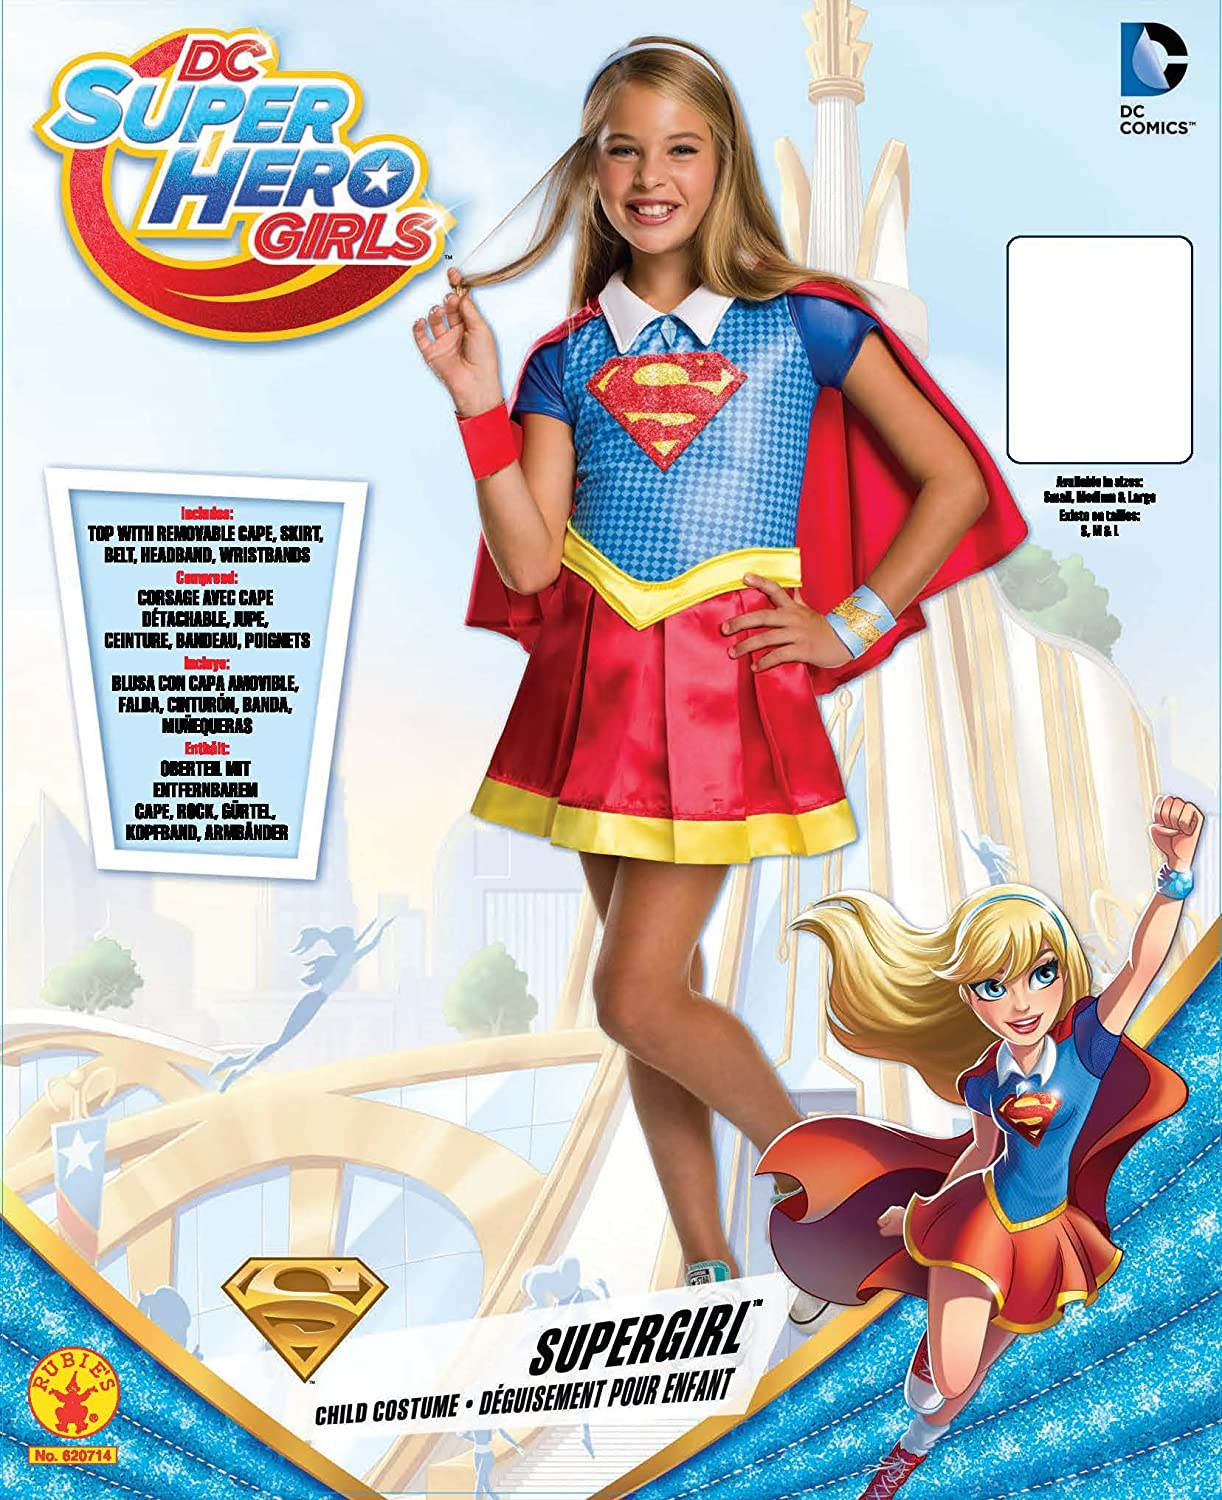 Amazon.com Rubieu0027s Costume Kids DC Superhero Girls Deluxe Supergirl Costume Large Toys u0026 Games  sc 1 st  Amazon.com & Amazon.com: Rubieu0027s Costume Kids DC Superhero Girls Deluxe Supergirl ...